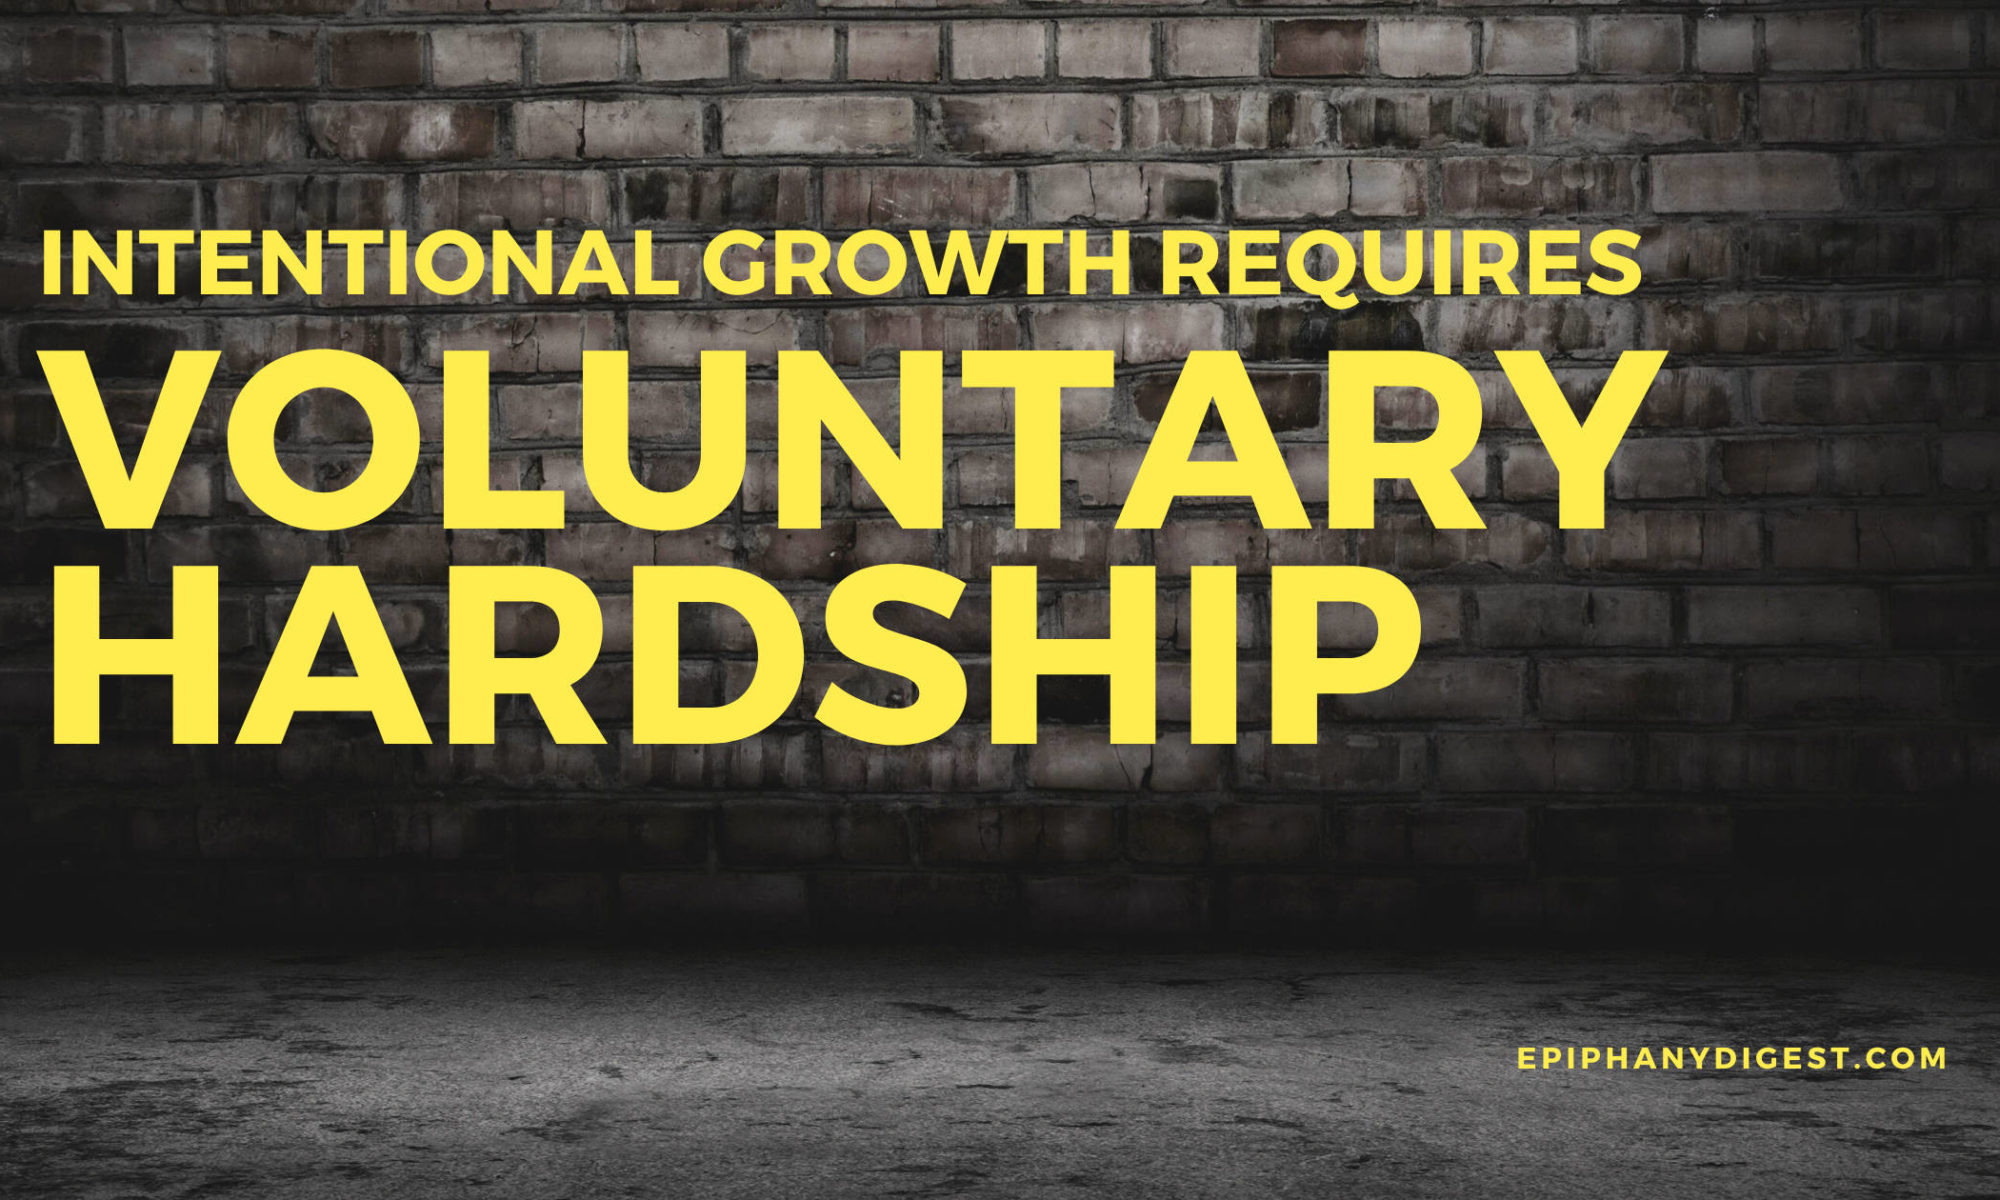 Quote: Intentional Growth Requires Voluntary Hardsip